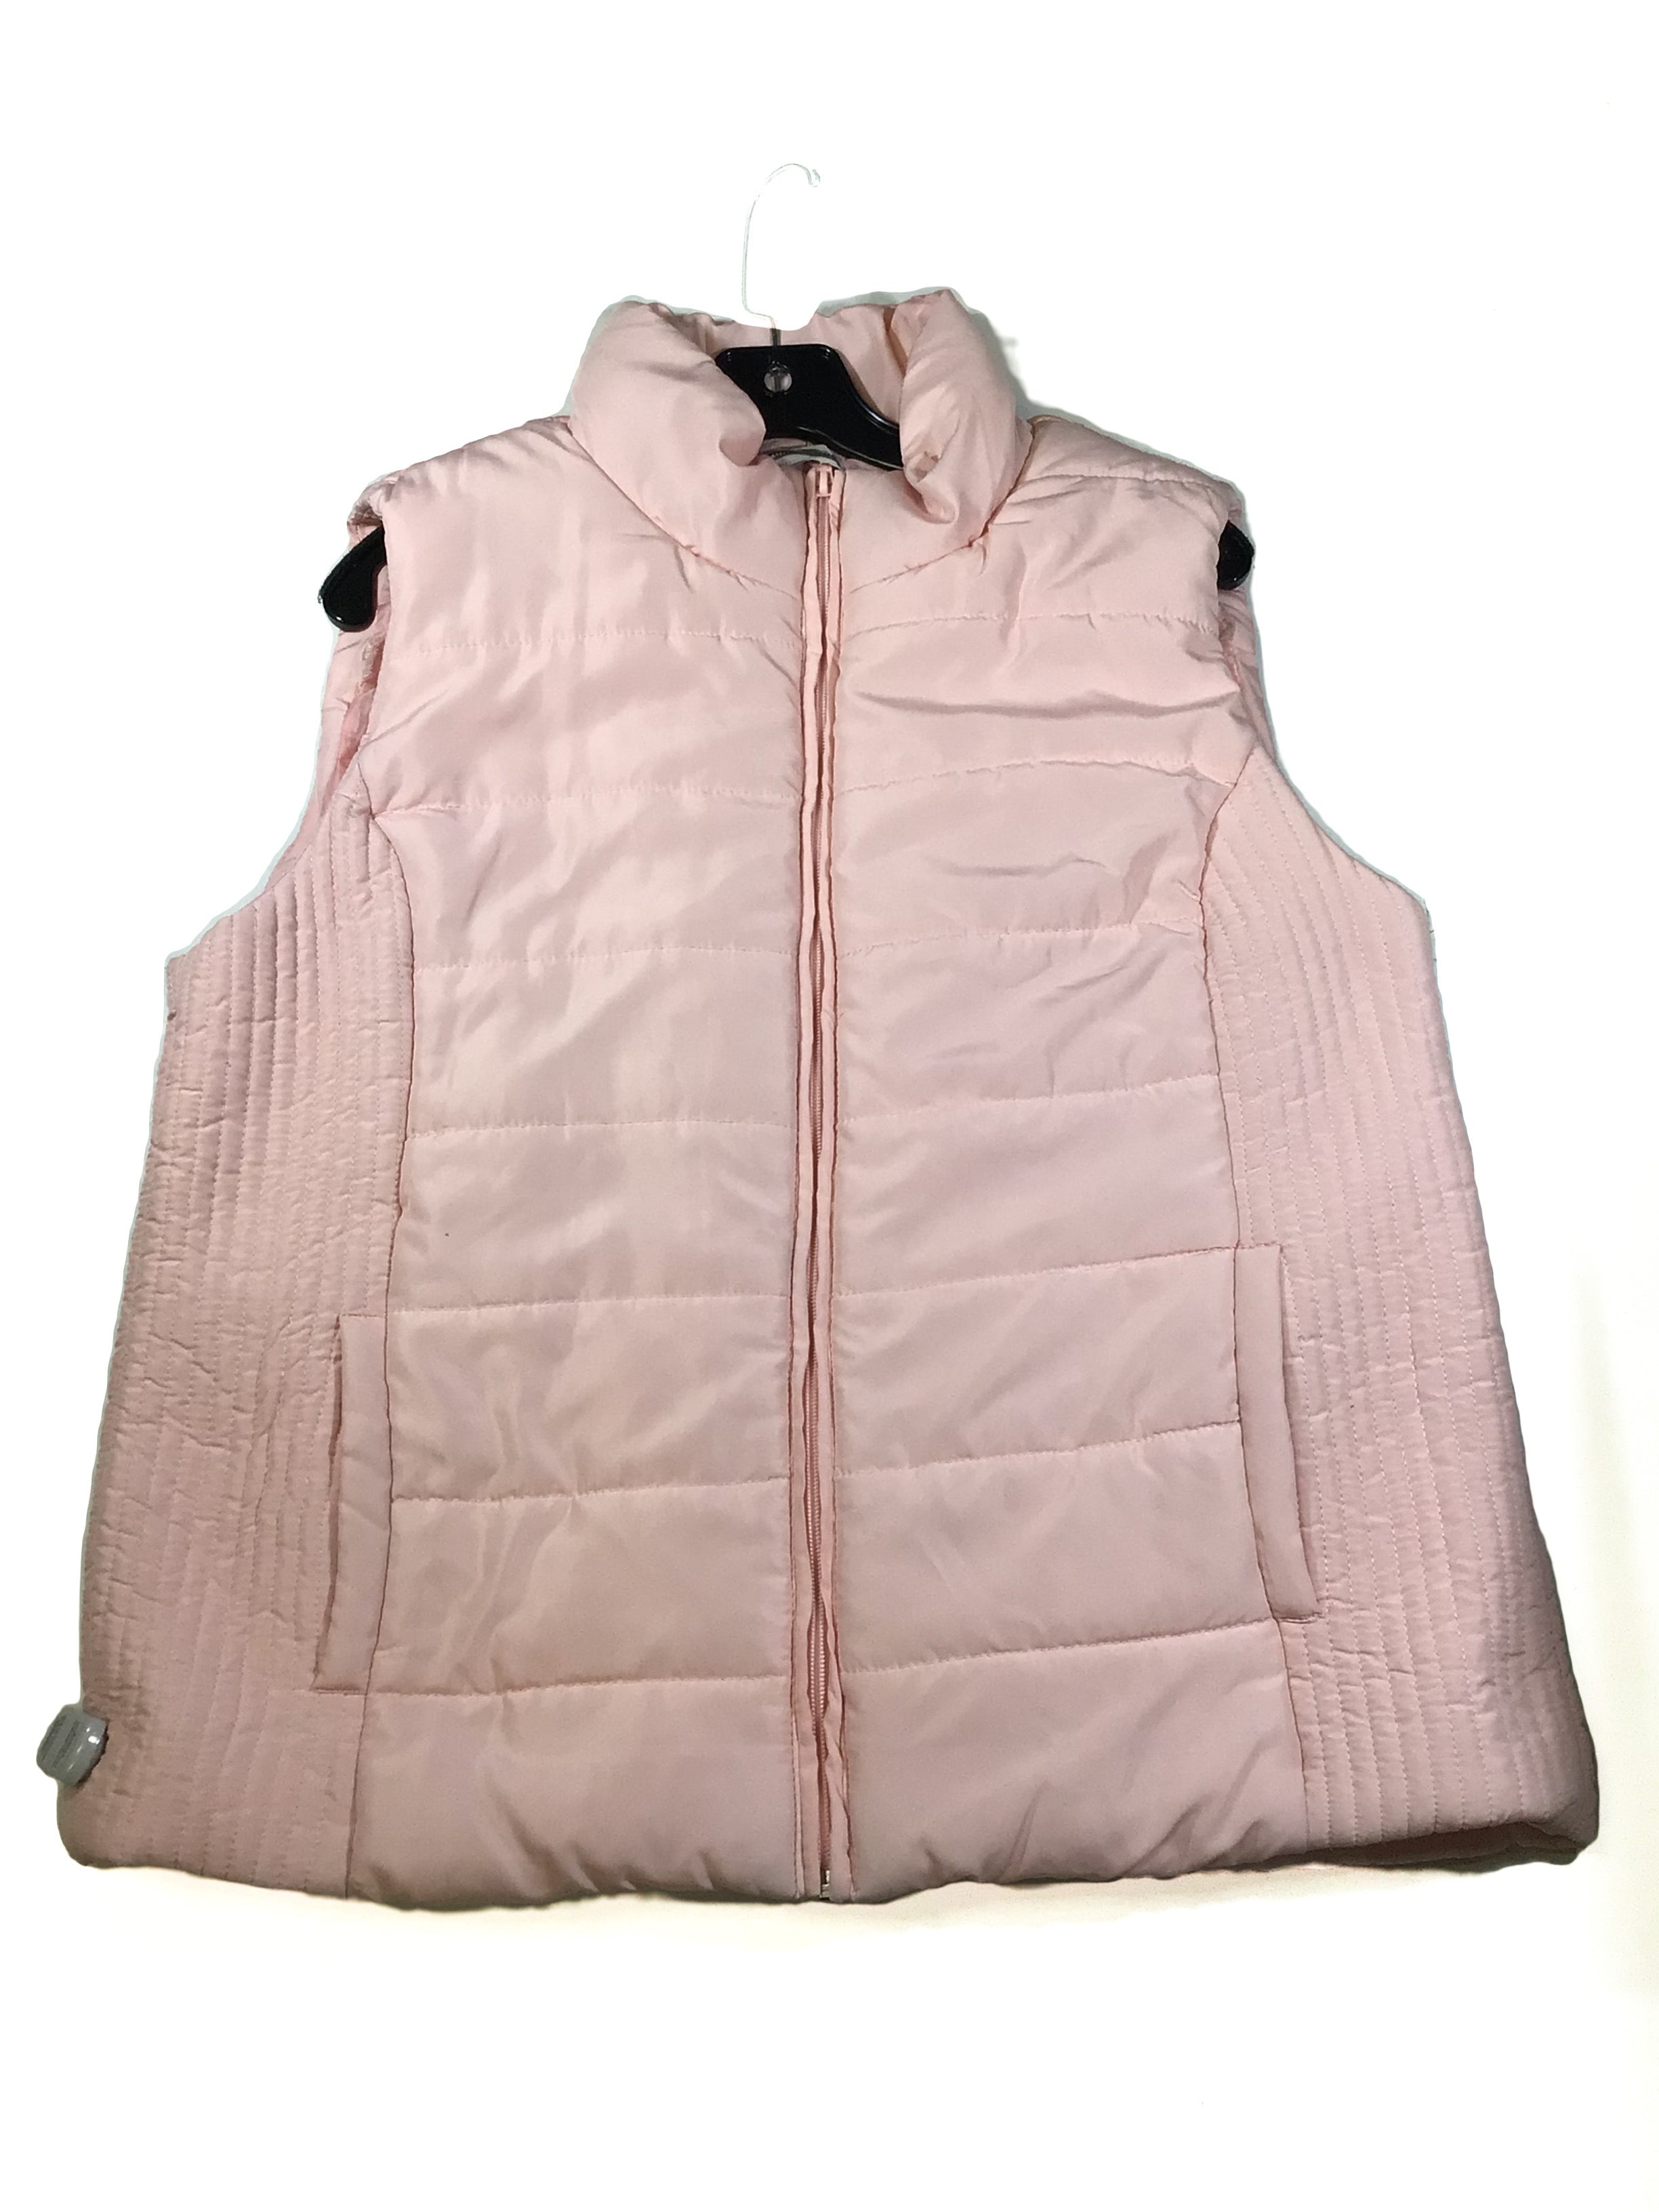 Primary Photo - BRAND: NEW YORK AND CO O <BR>STYLE: VEST <BR>COLOR: ROSE <BR>SIZE: XL <BR>SKU: 213-213135-6026